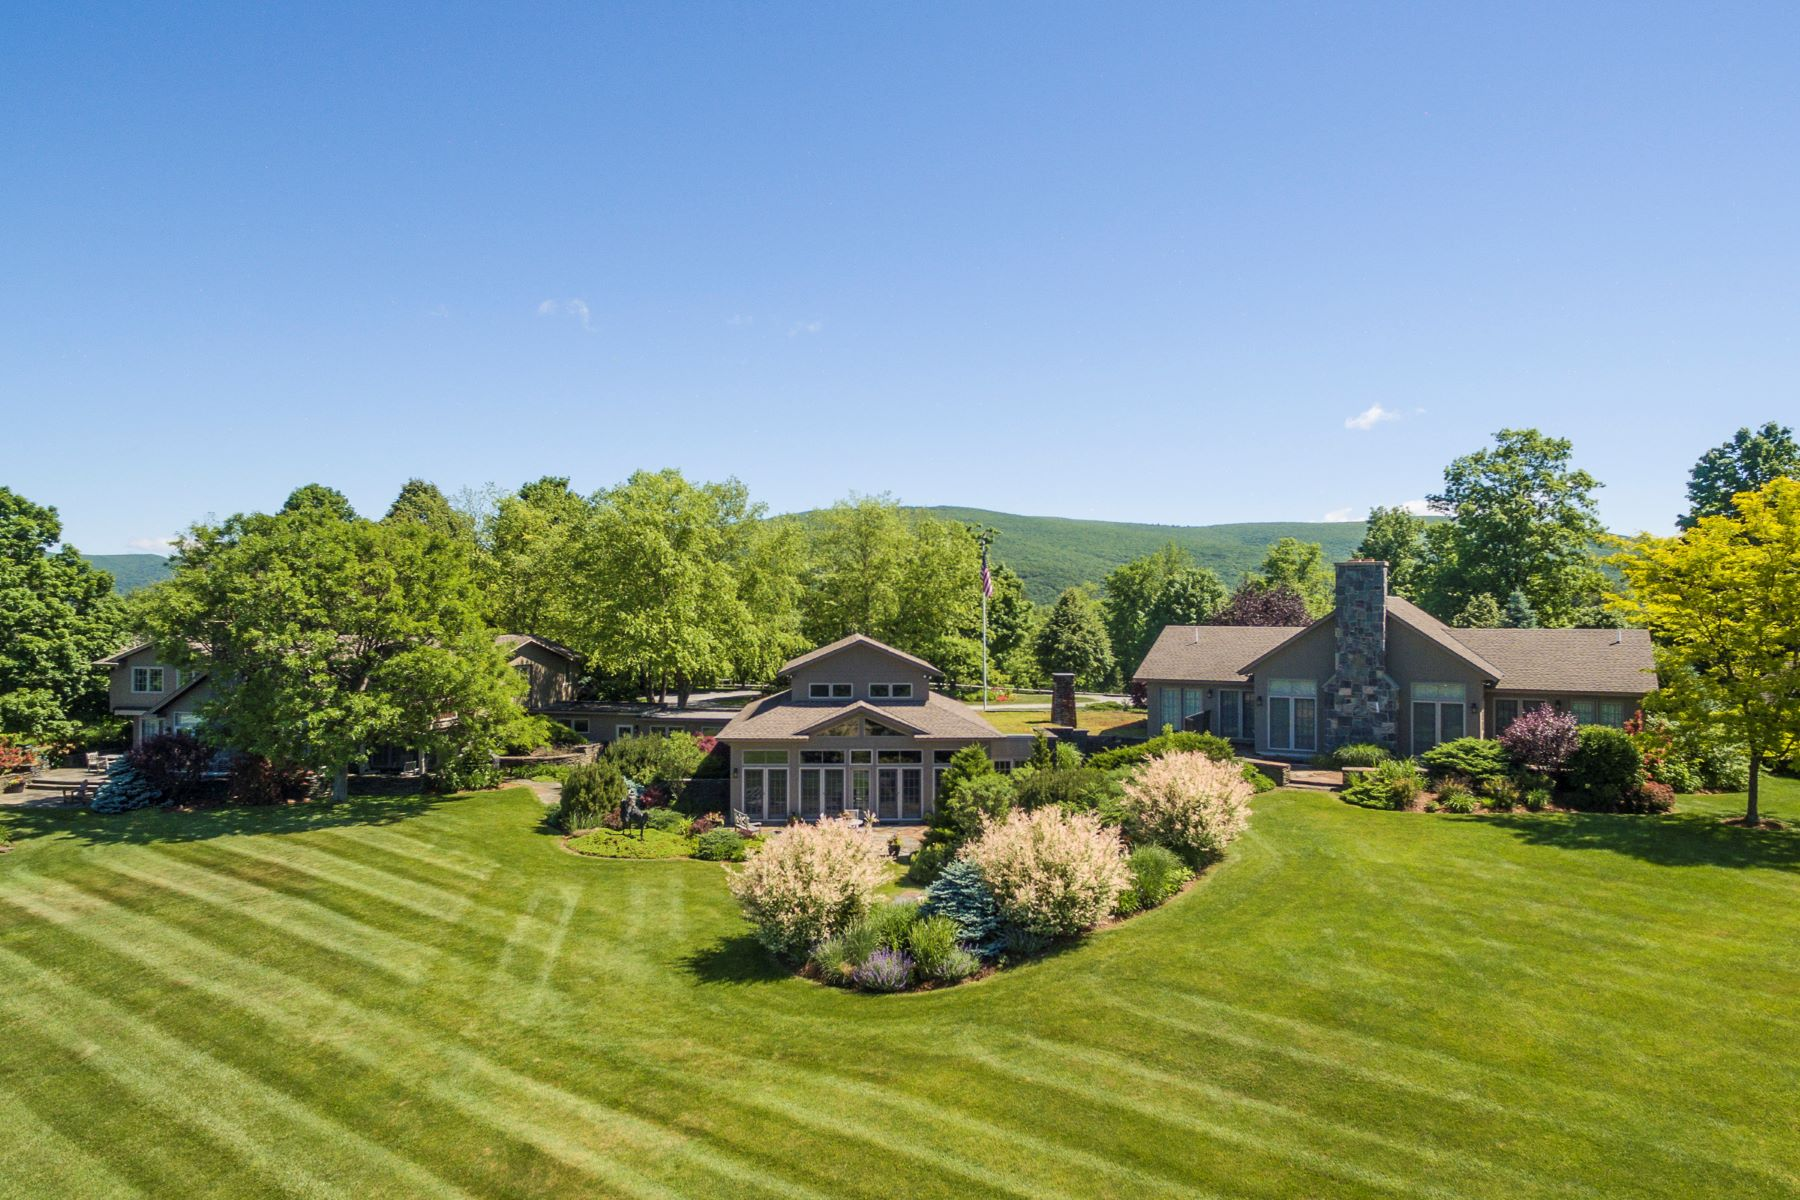 Casa Unifamiliar por un Venta en Live your dream in this stunning 11.7 acre Country Estate with Indoor Pool and T 465 Stratton Rd Williamstown, Massachusetts 01267 Estados Unidos